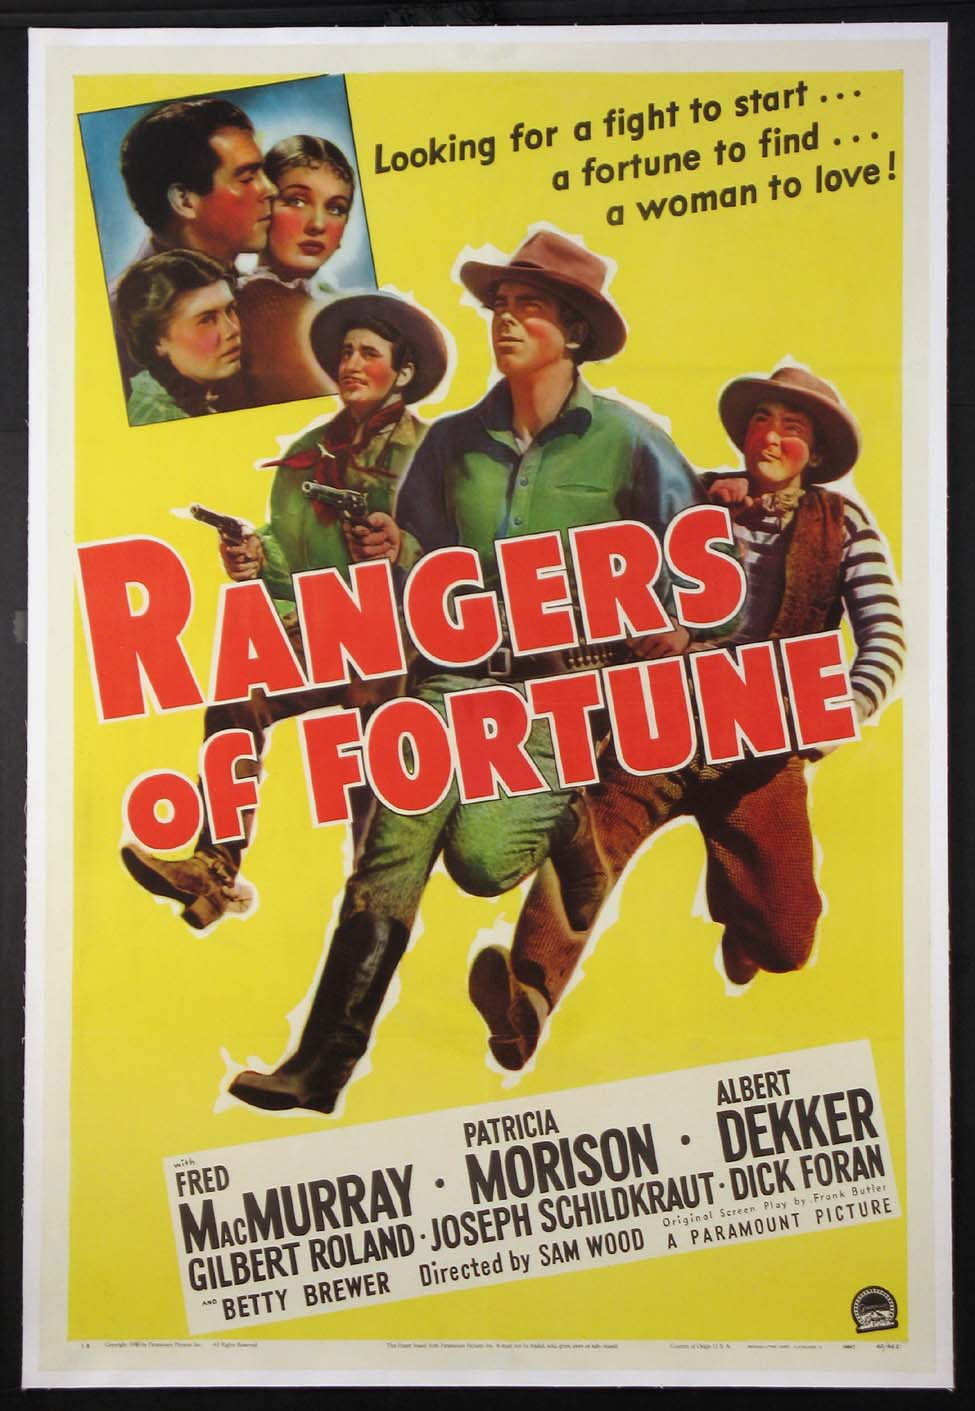 RANGERS OF FORTUNE @ FilmPosters.com